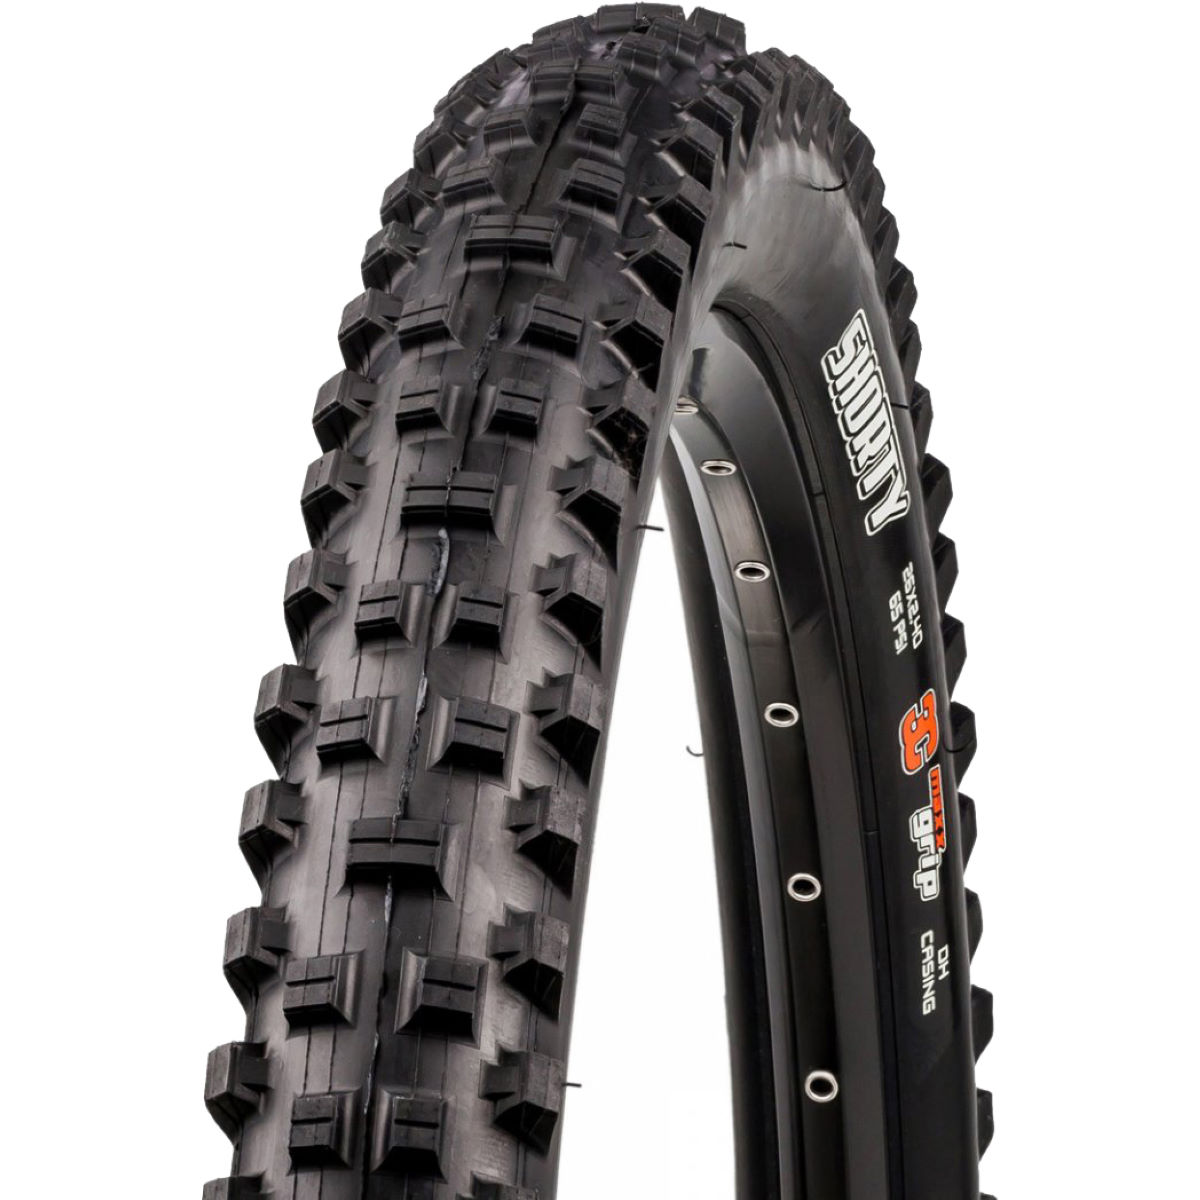 Maxxis Maxxis Shorty Wired MTB Tyre   Tyres